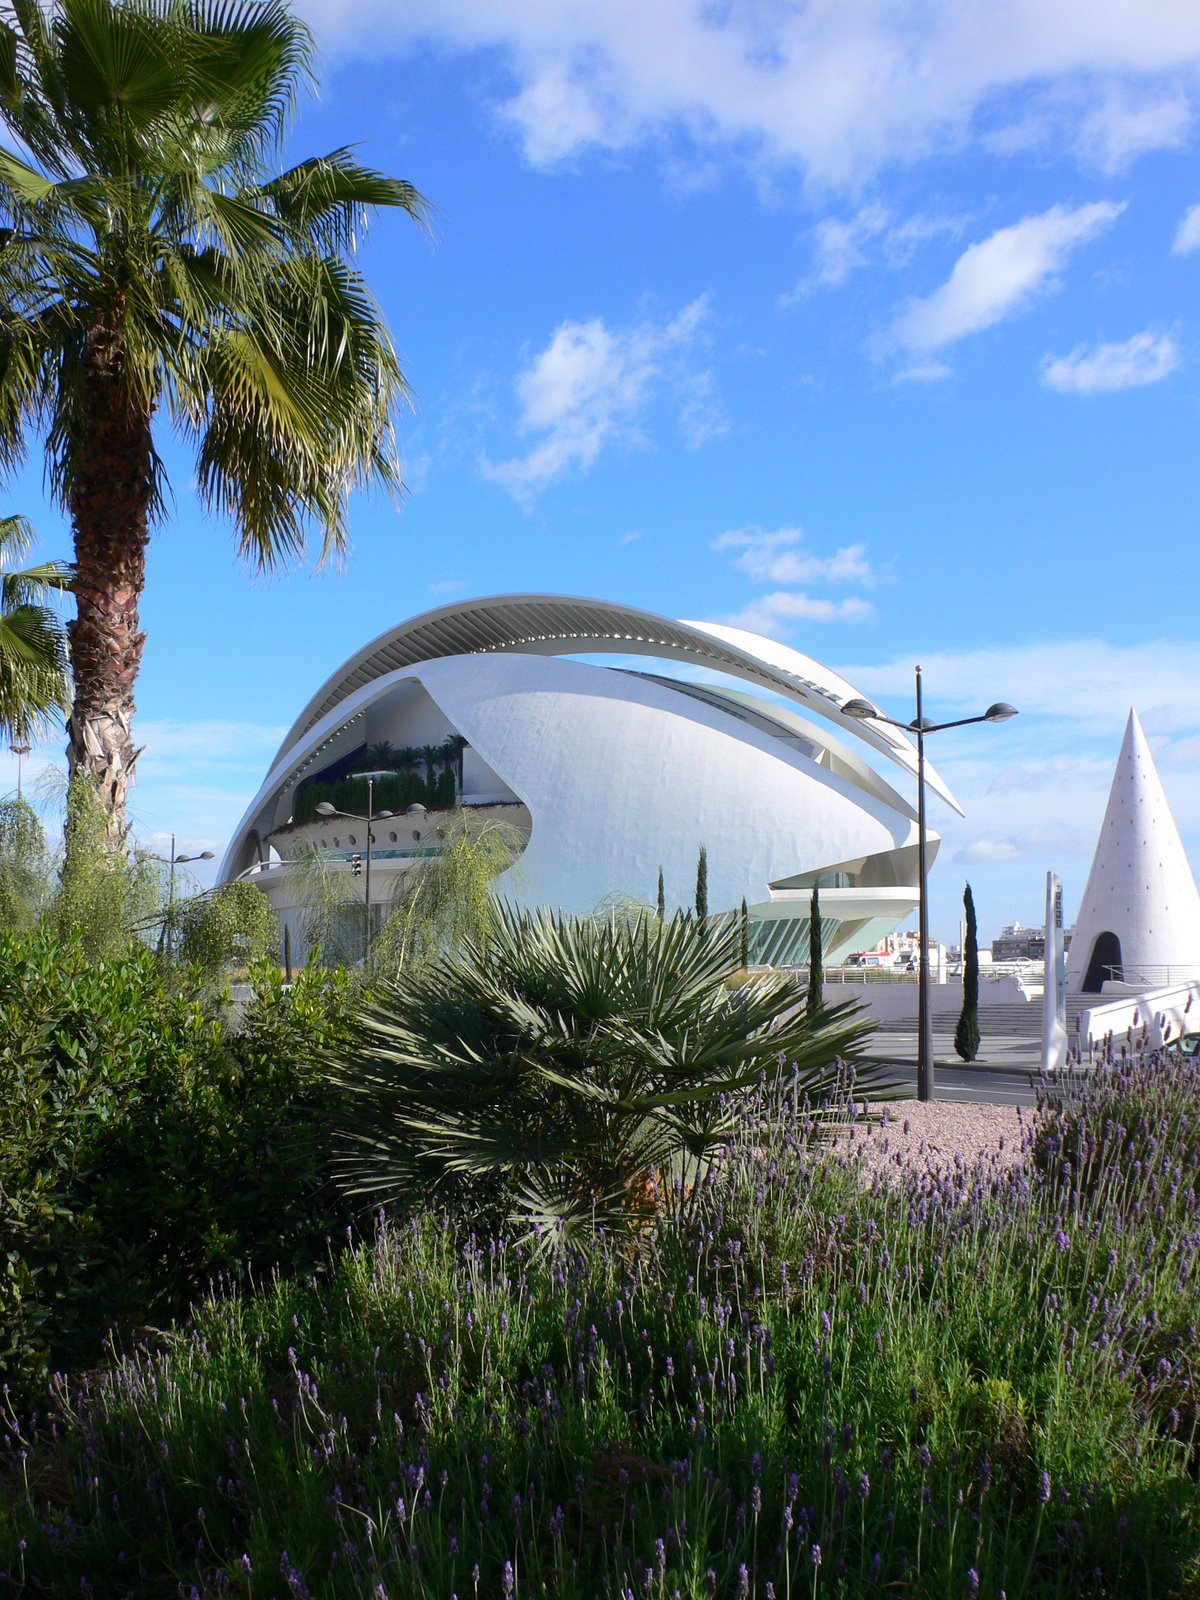 The city of arts and sciences in valencia heather on - Palau de les heures ...